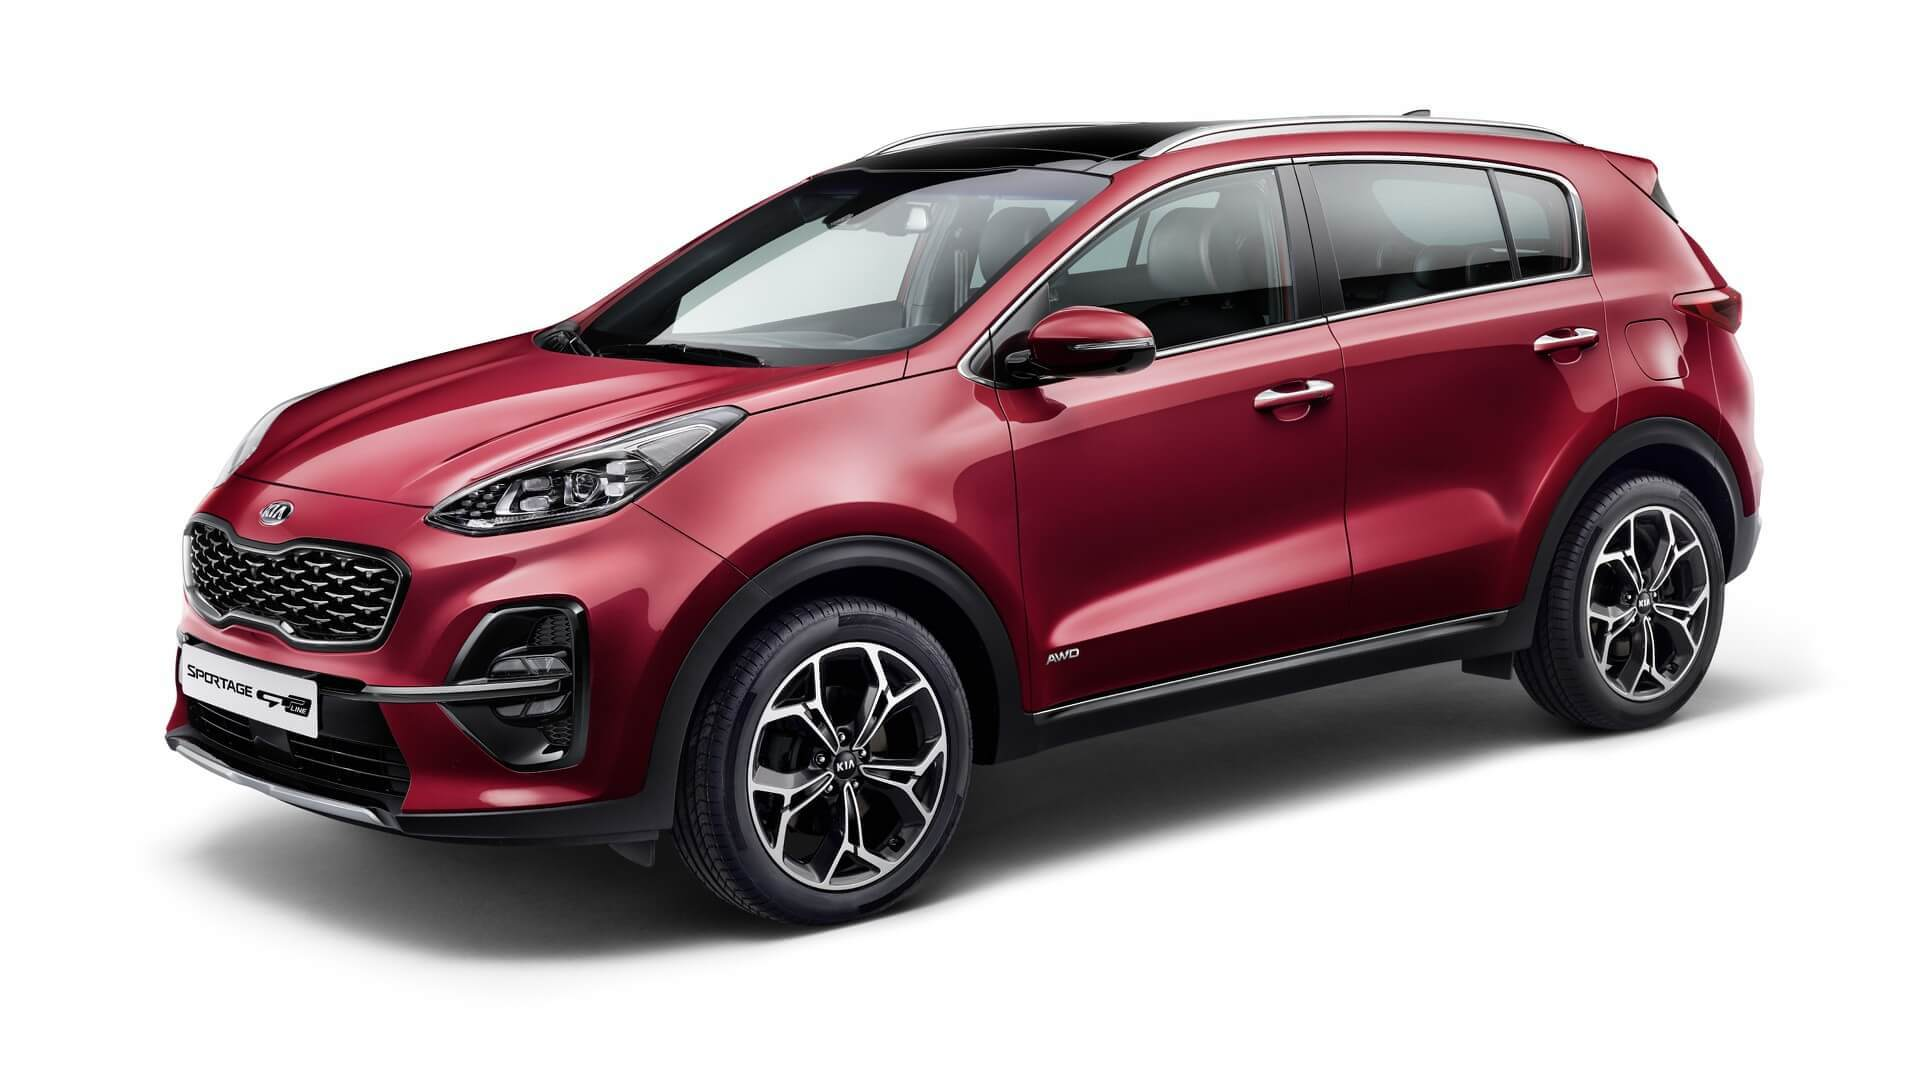 The South Korean car giant KIA Motors has revealed the first shots of its refreshed Sportage compact SUV